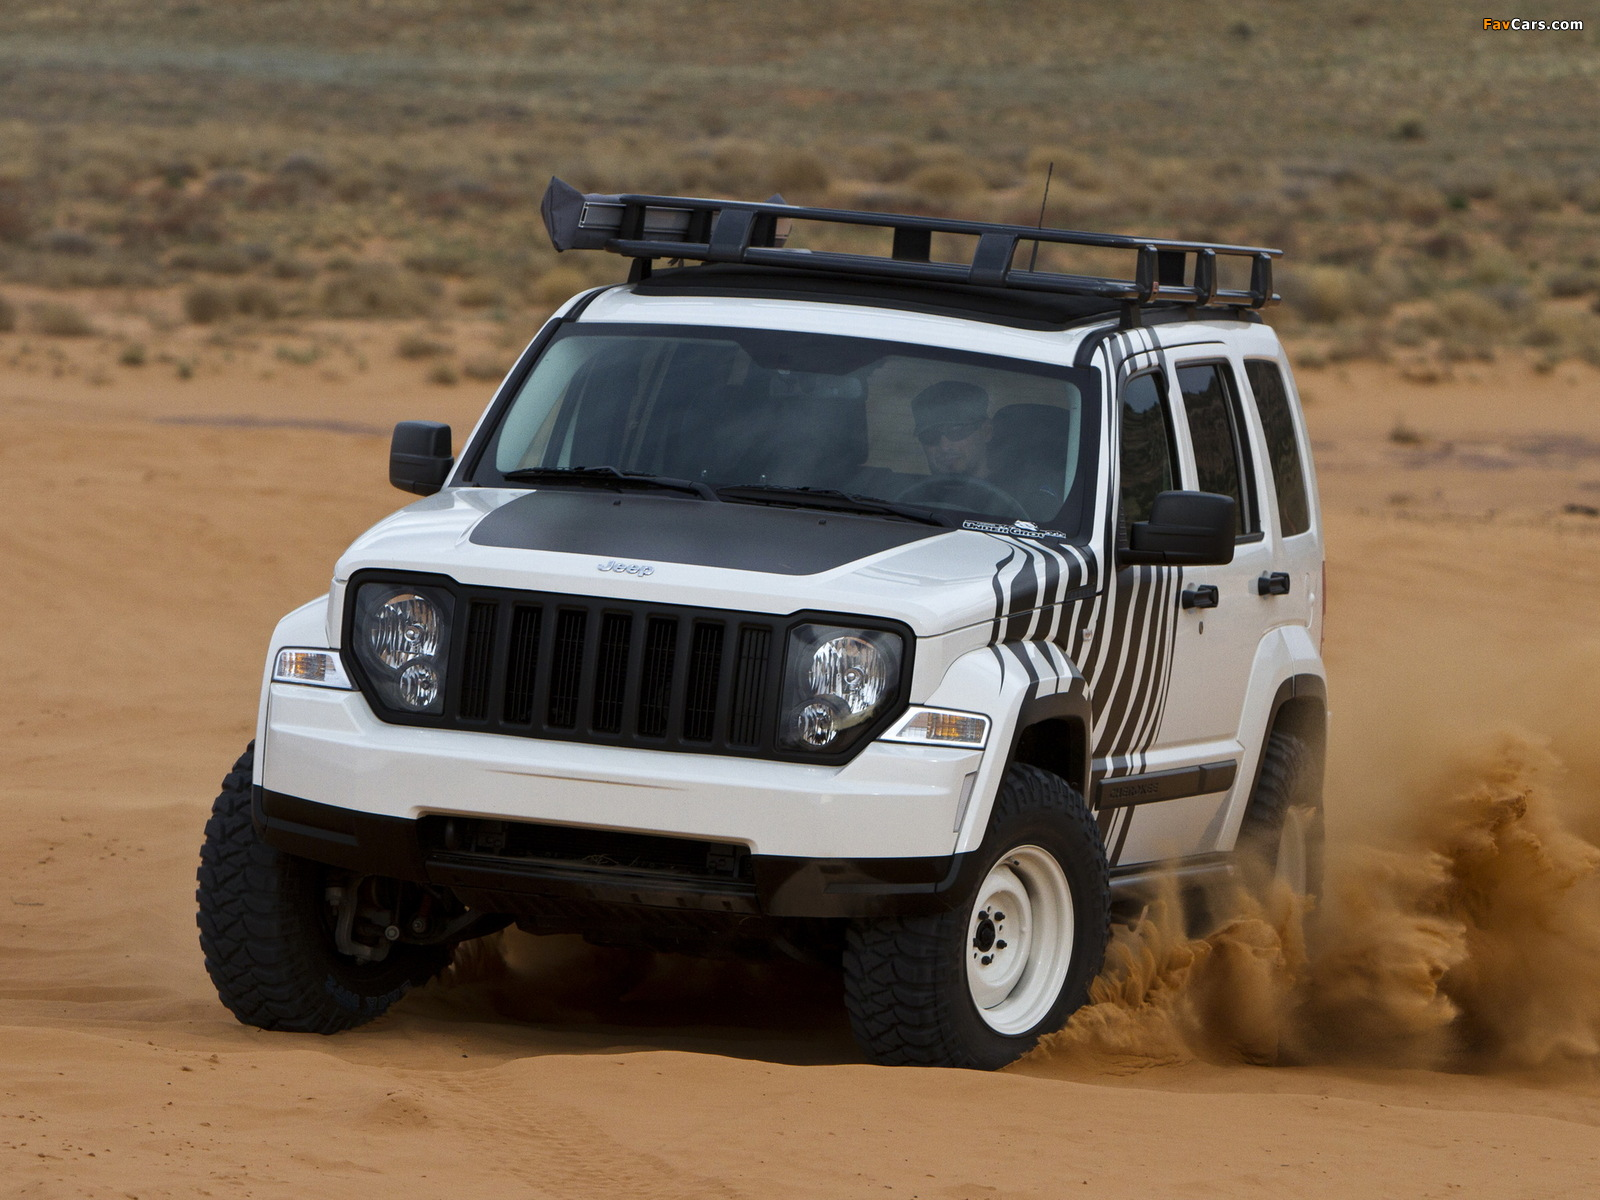 2011 jeep cherokee kk pictures information and specs. Black Bedroom Furniture Sets. Home Design Ideas